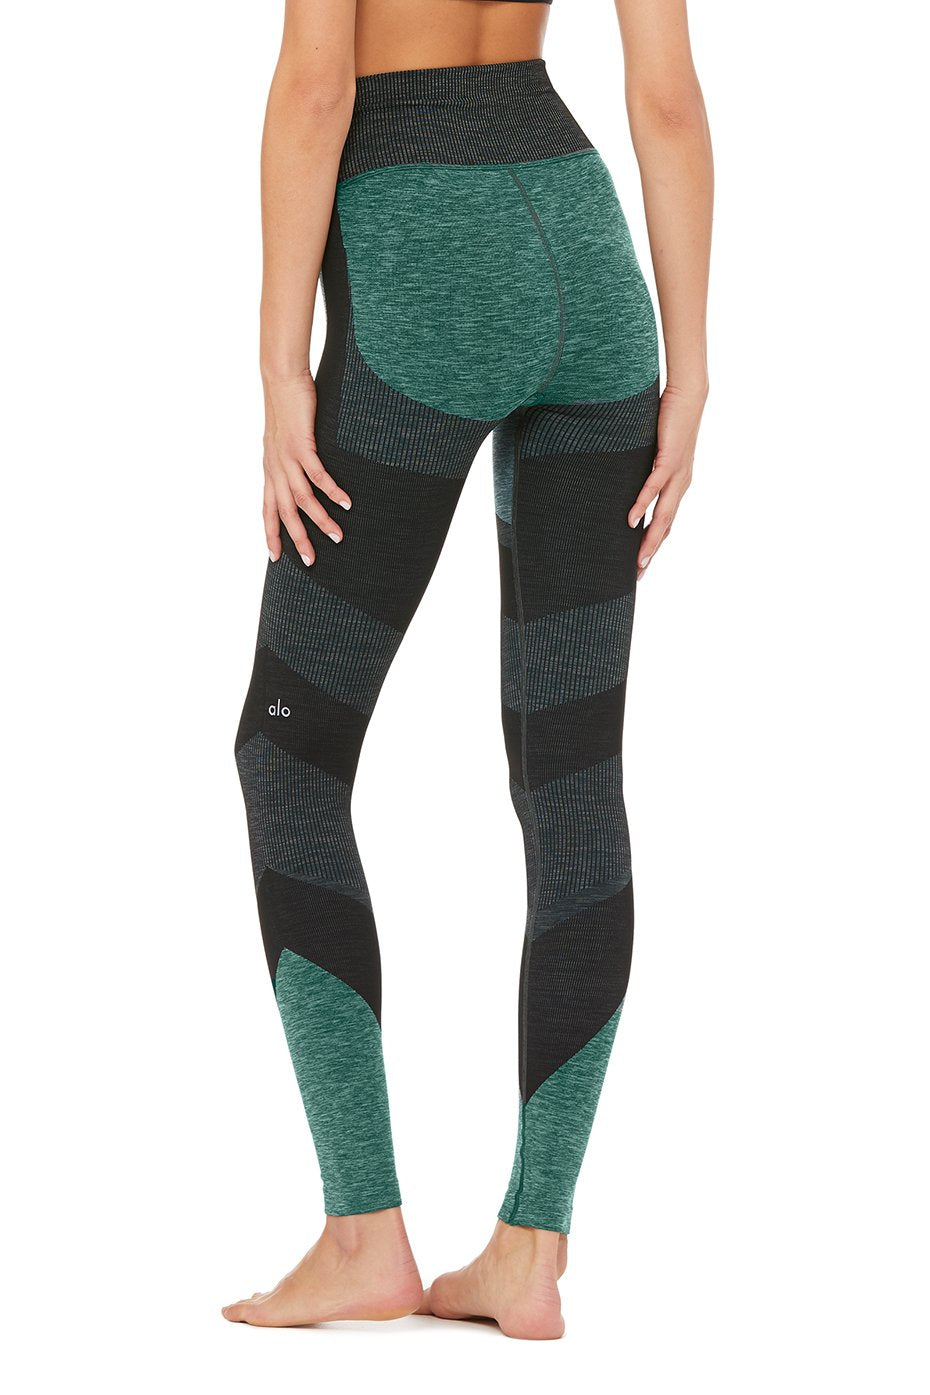 390a60db8178b8 ... Alo Yoga SMALL High-Waist Seamless Lift Legging - Tourmaline Heather